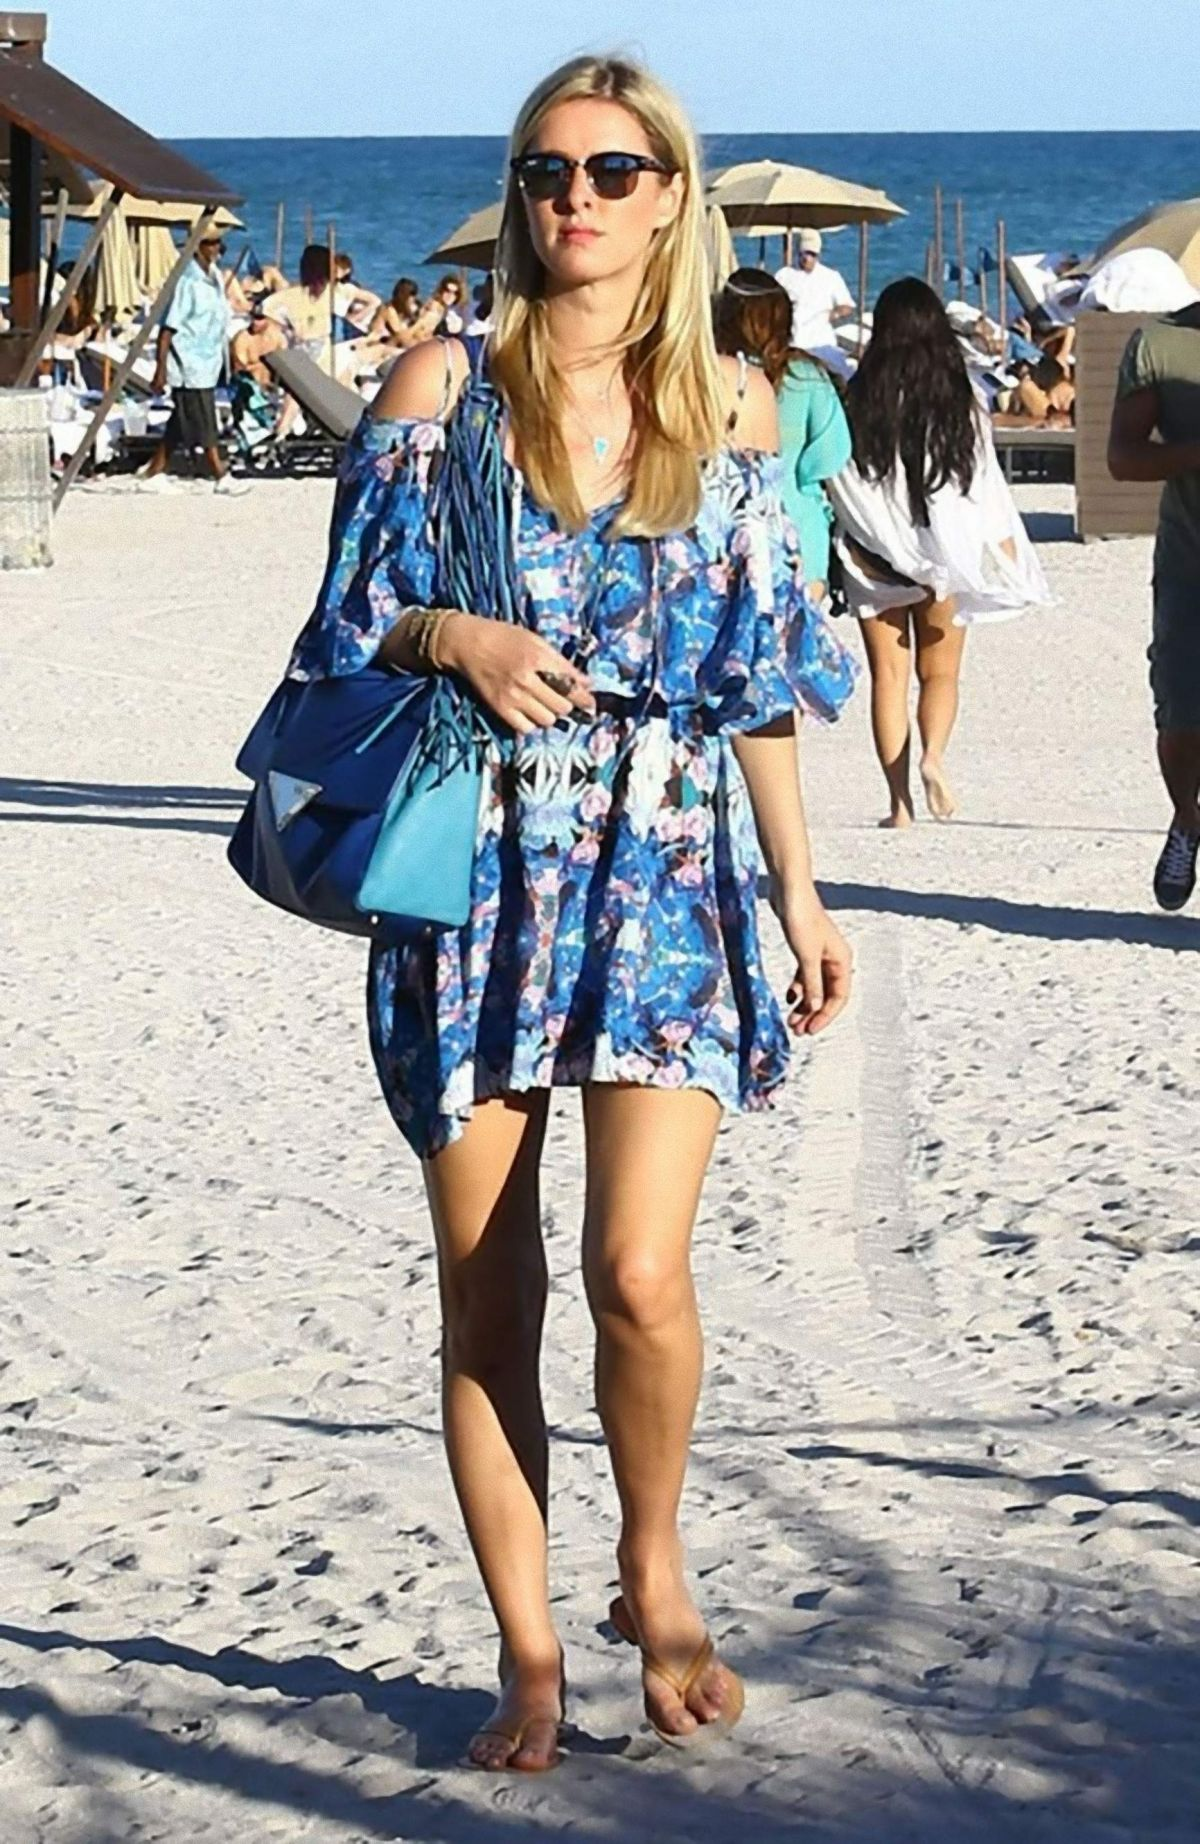 NICKY HILTON Out And About In Miami Beach